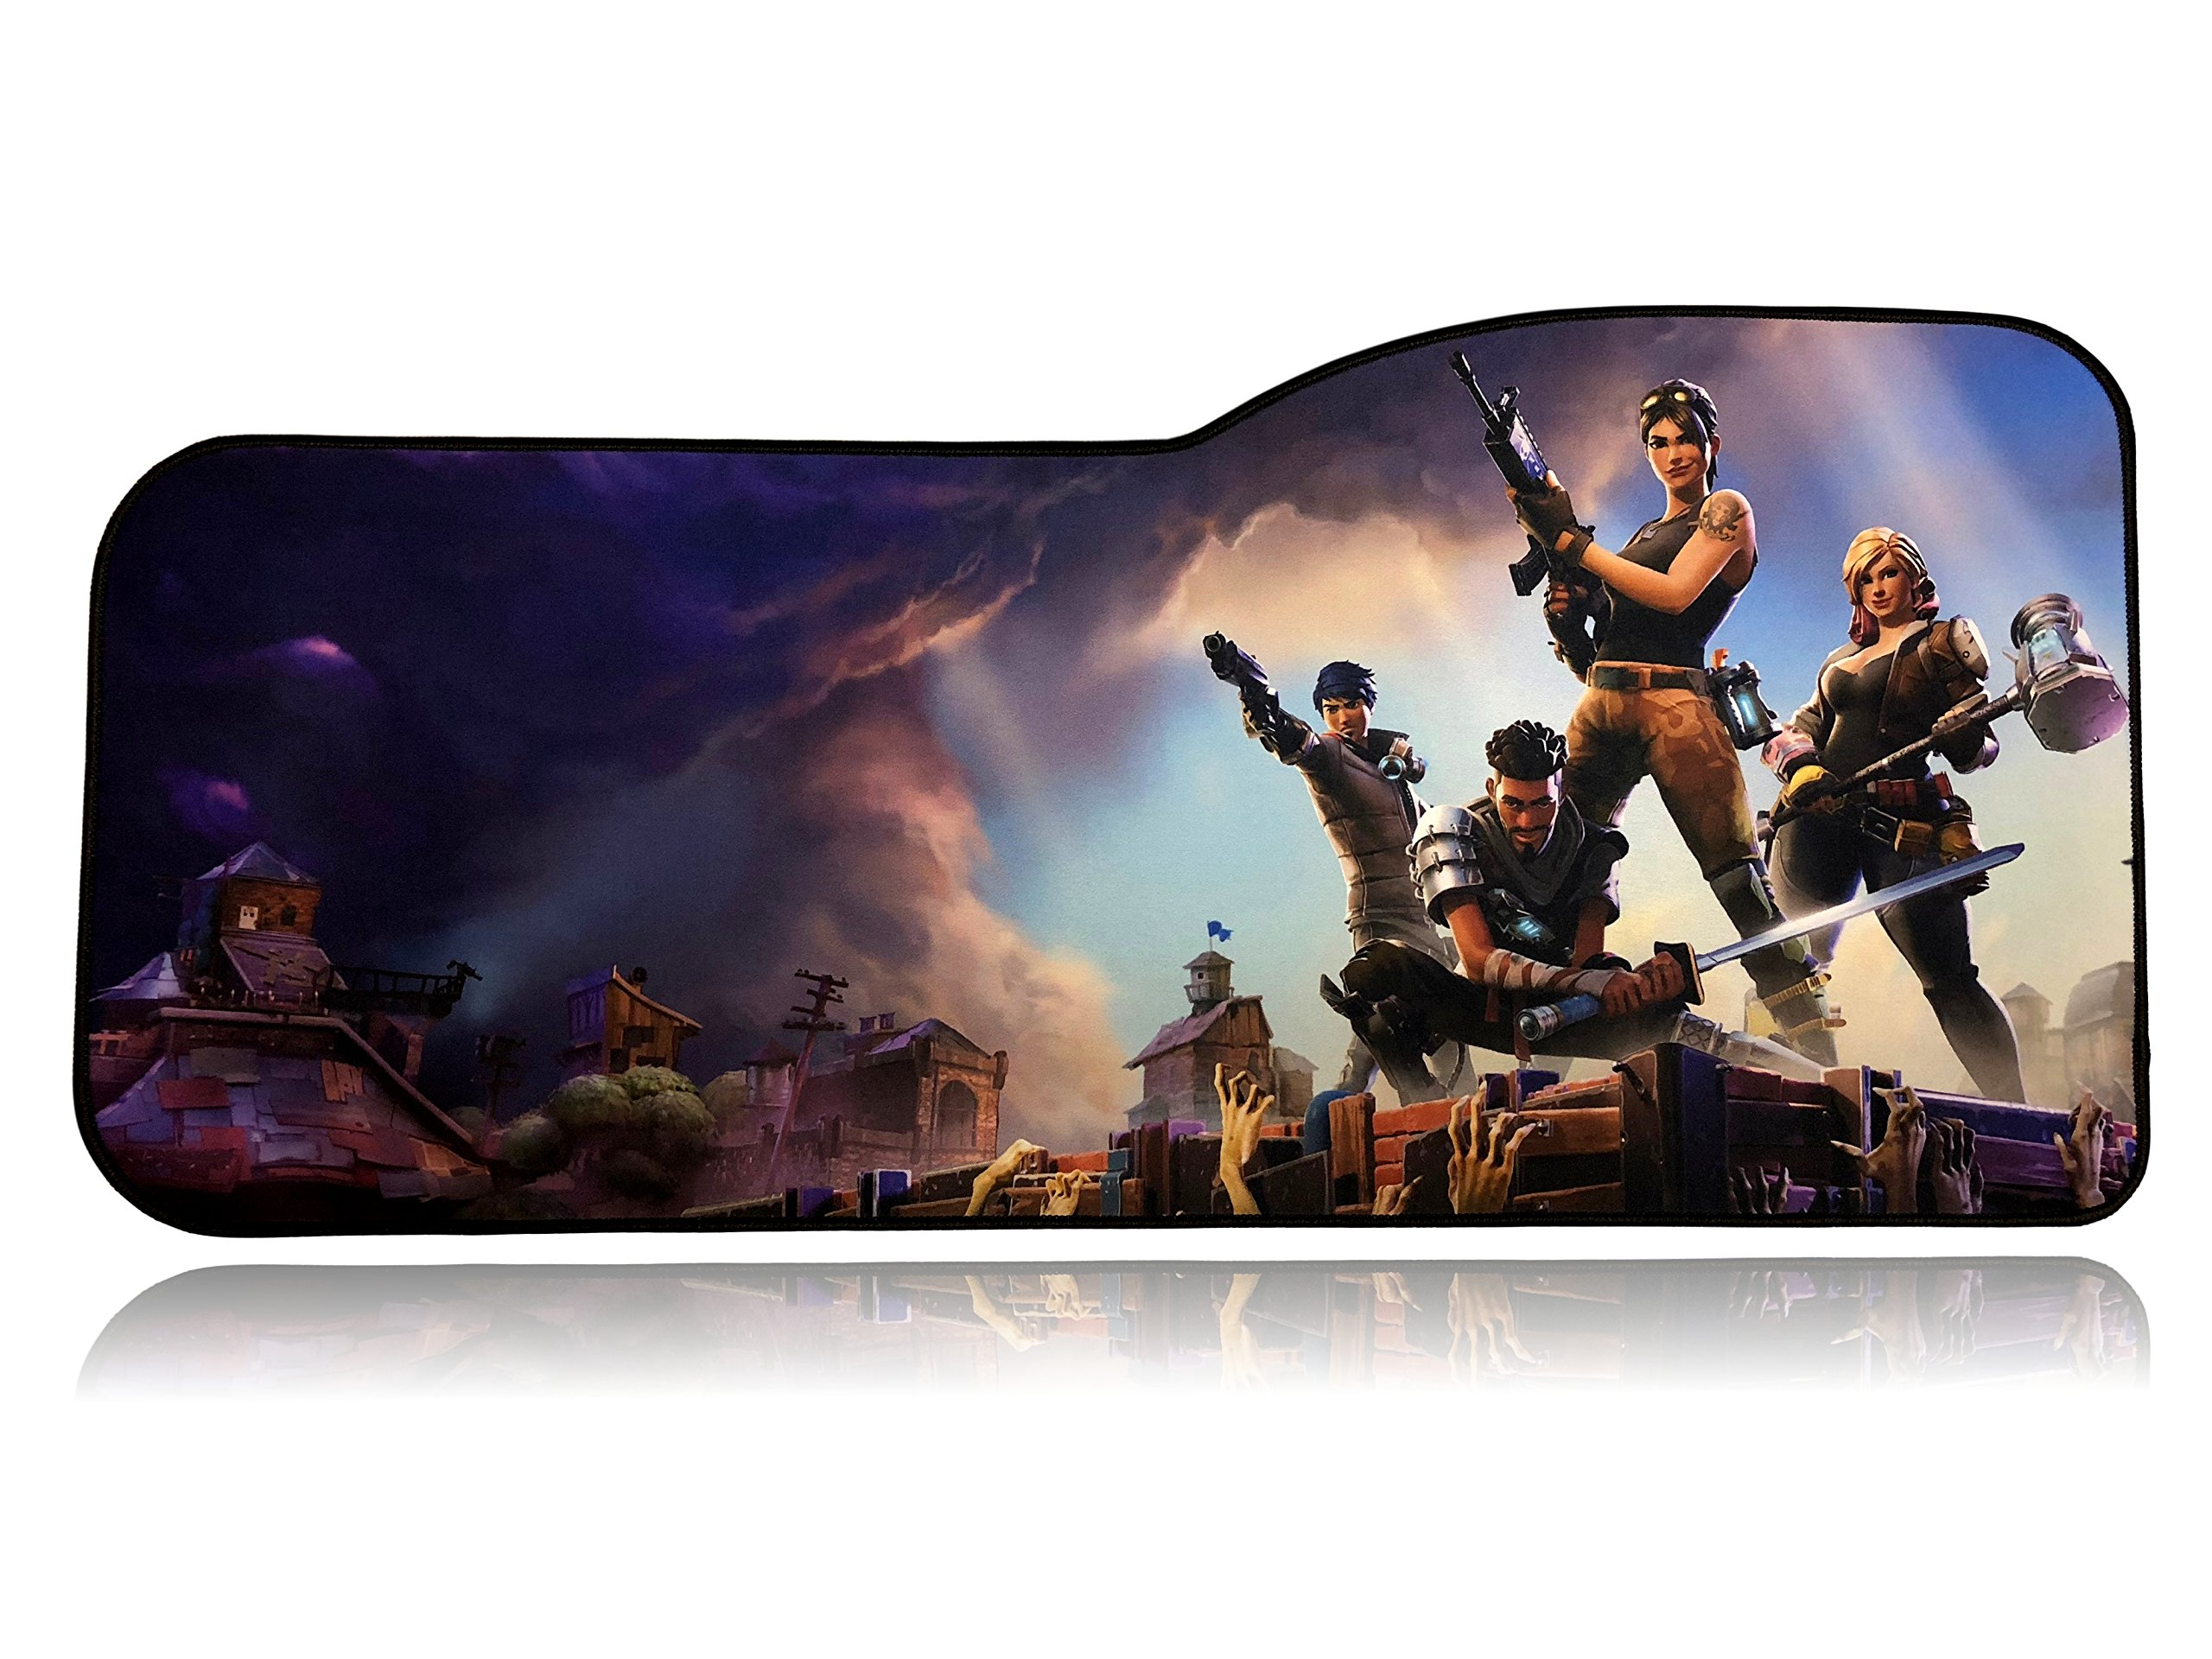 Fortnite Extended Size Custom Professional Gaming Mouse Pad - Anti Slip Rubber Base - Stitched Edges - Large Desk Mat - 28.5'' x 12.75'' x 0.12'' (Curve, Fortnite)